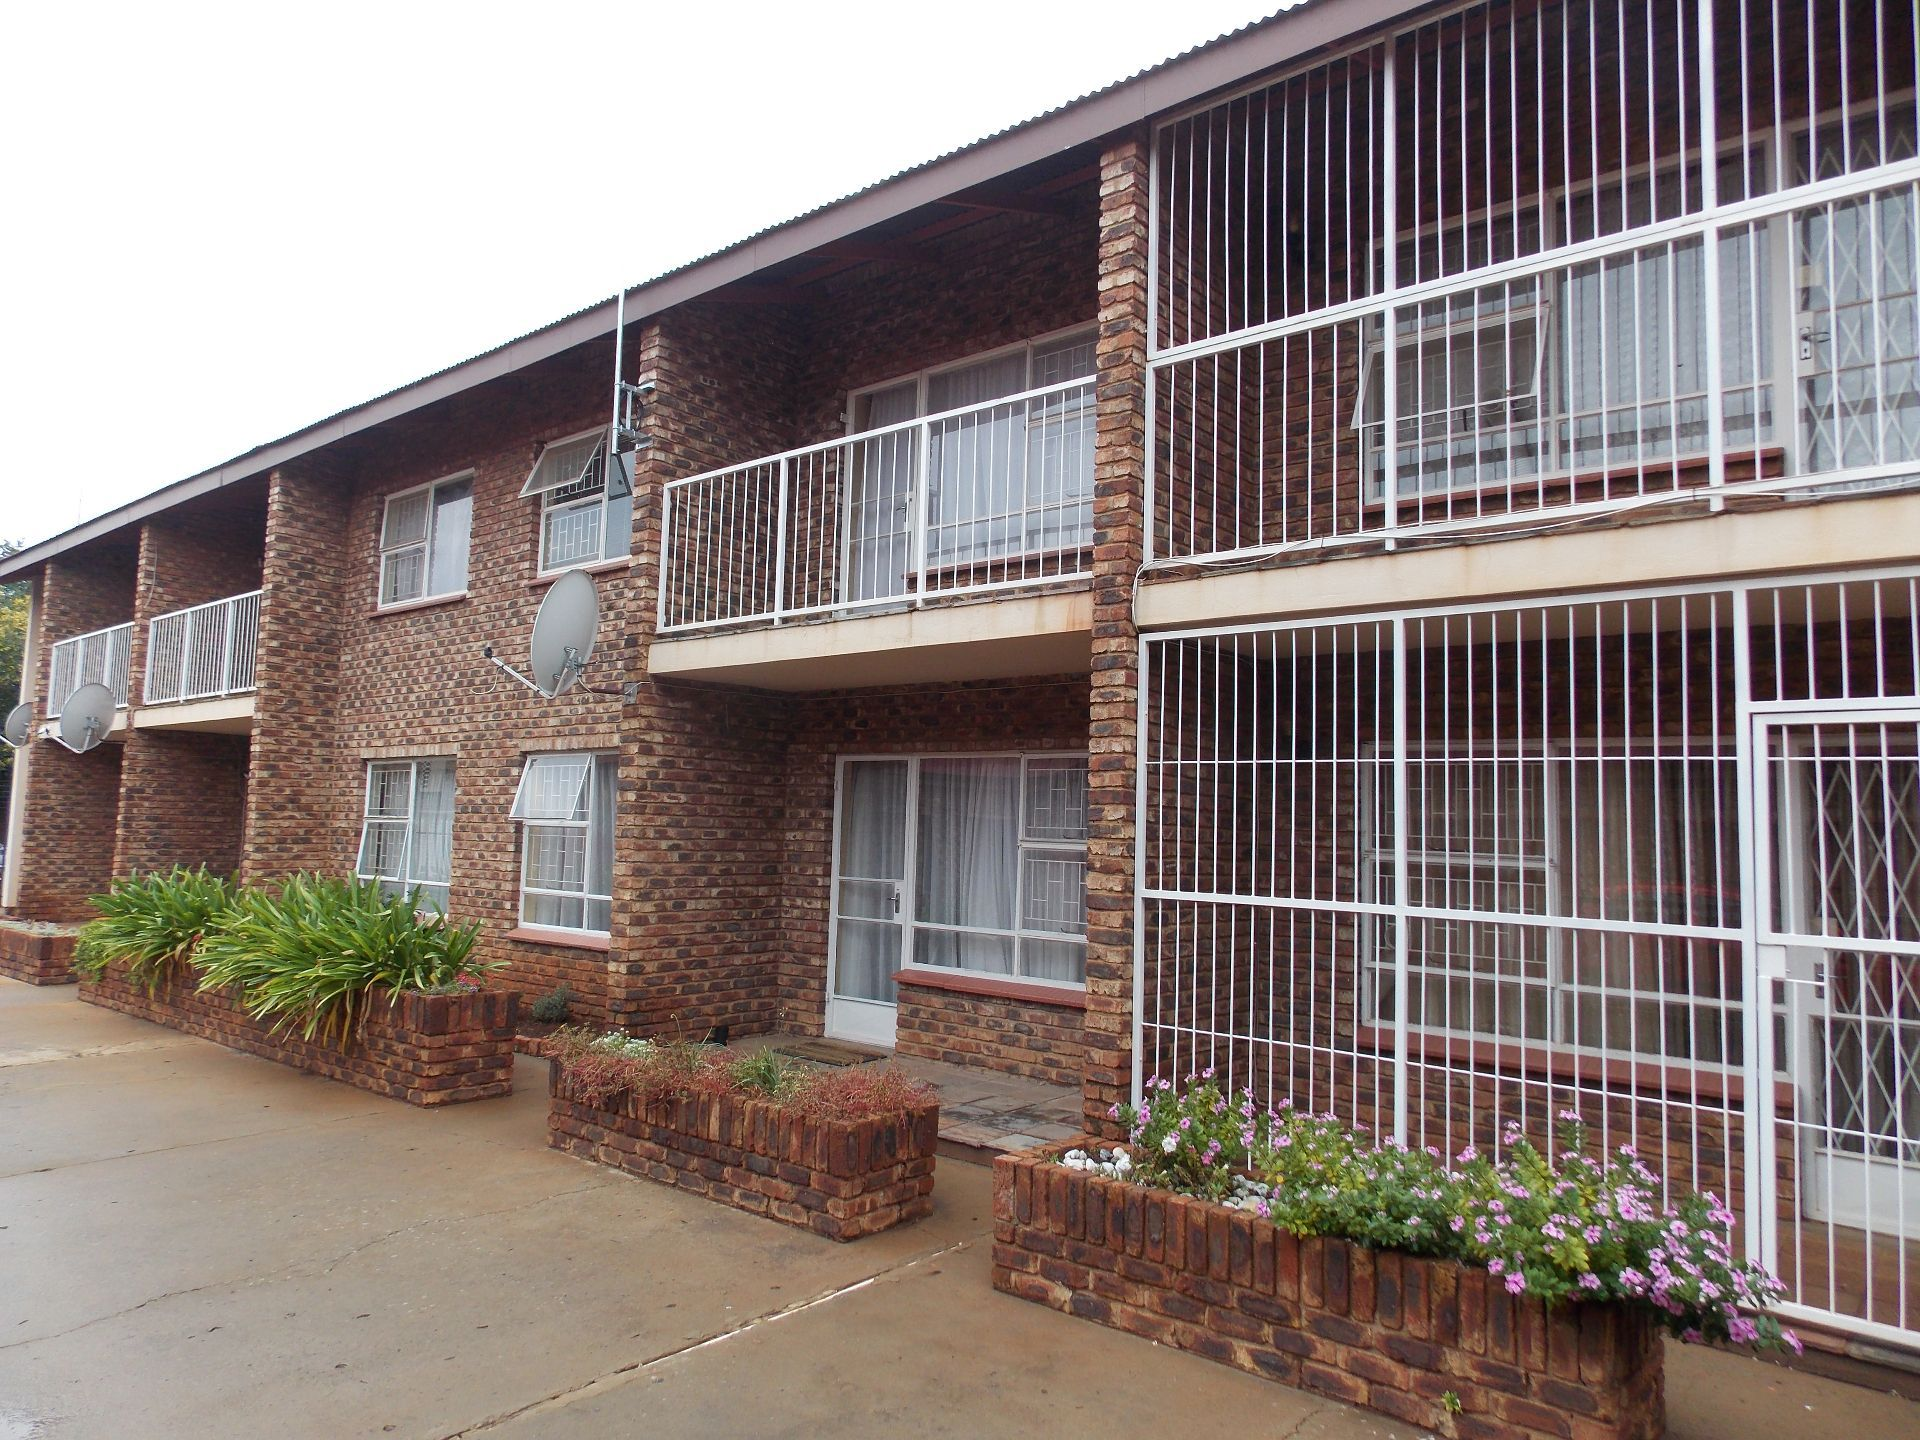 Potchefstroom Central property for sale. Ref No: 13449640. Picture no 1